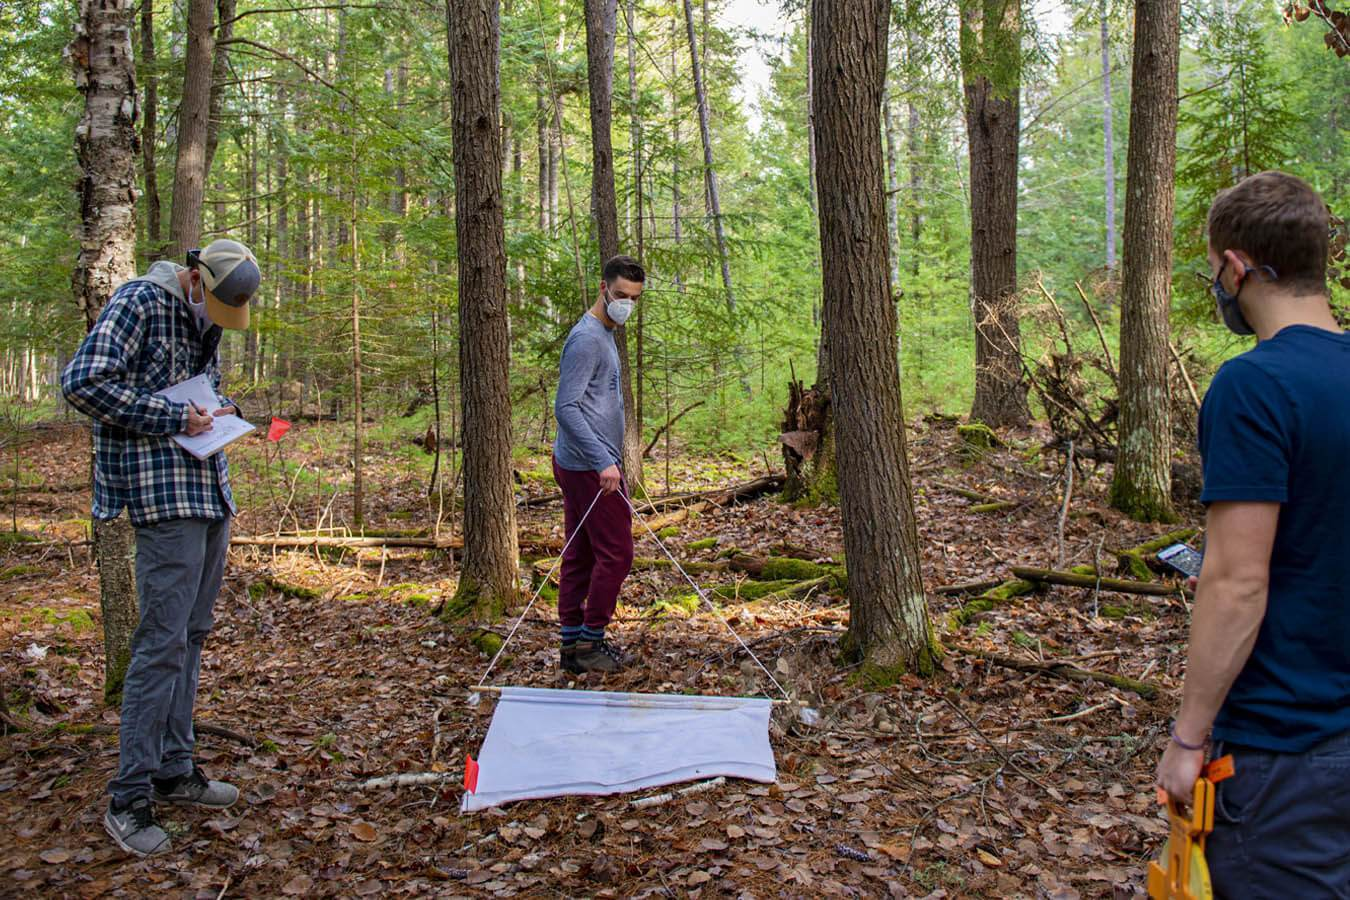 Ecology and environmental sciences students examined vegetation, wildlife and abiotic associations of ticks on campus. They also sampled ticks to kickoff for a long-term monitoring project on campus.